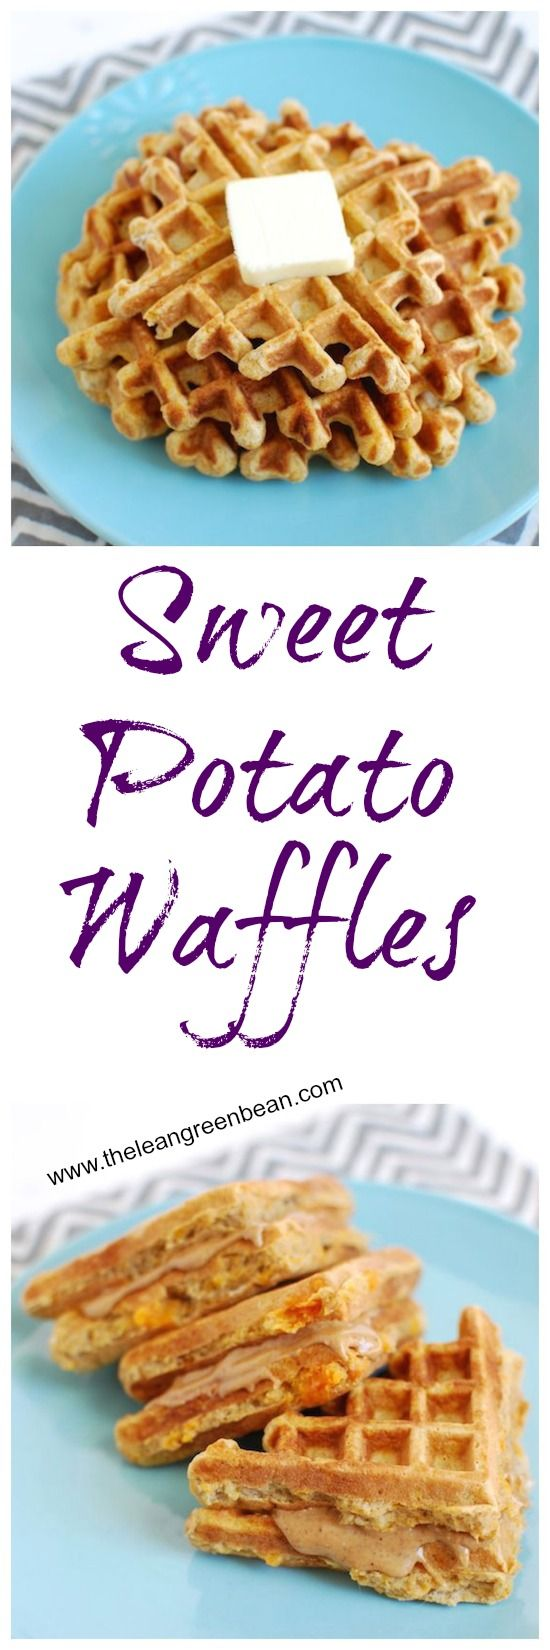 Sweet Potato Waffles ⅓ cup cooked, mashed sweet potato ¼ cup plain yogurt 2 eggs ¼ cup white whole wheat flour (or oat flour) ¾ teaspoon baking powder ½ teaspoon cinnamon ½ teaspoon vanilla extract